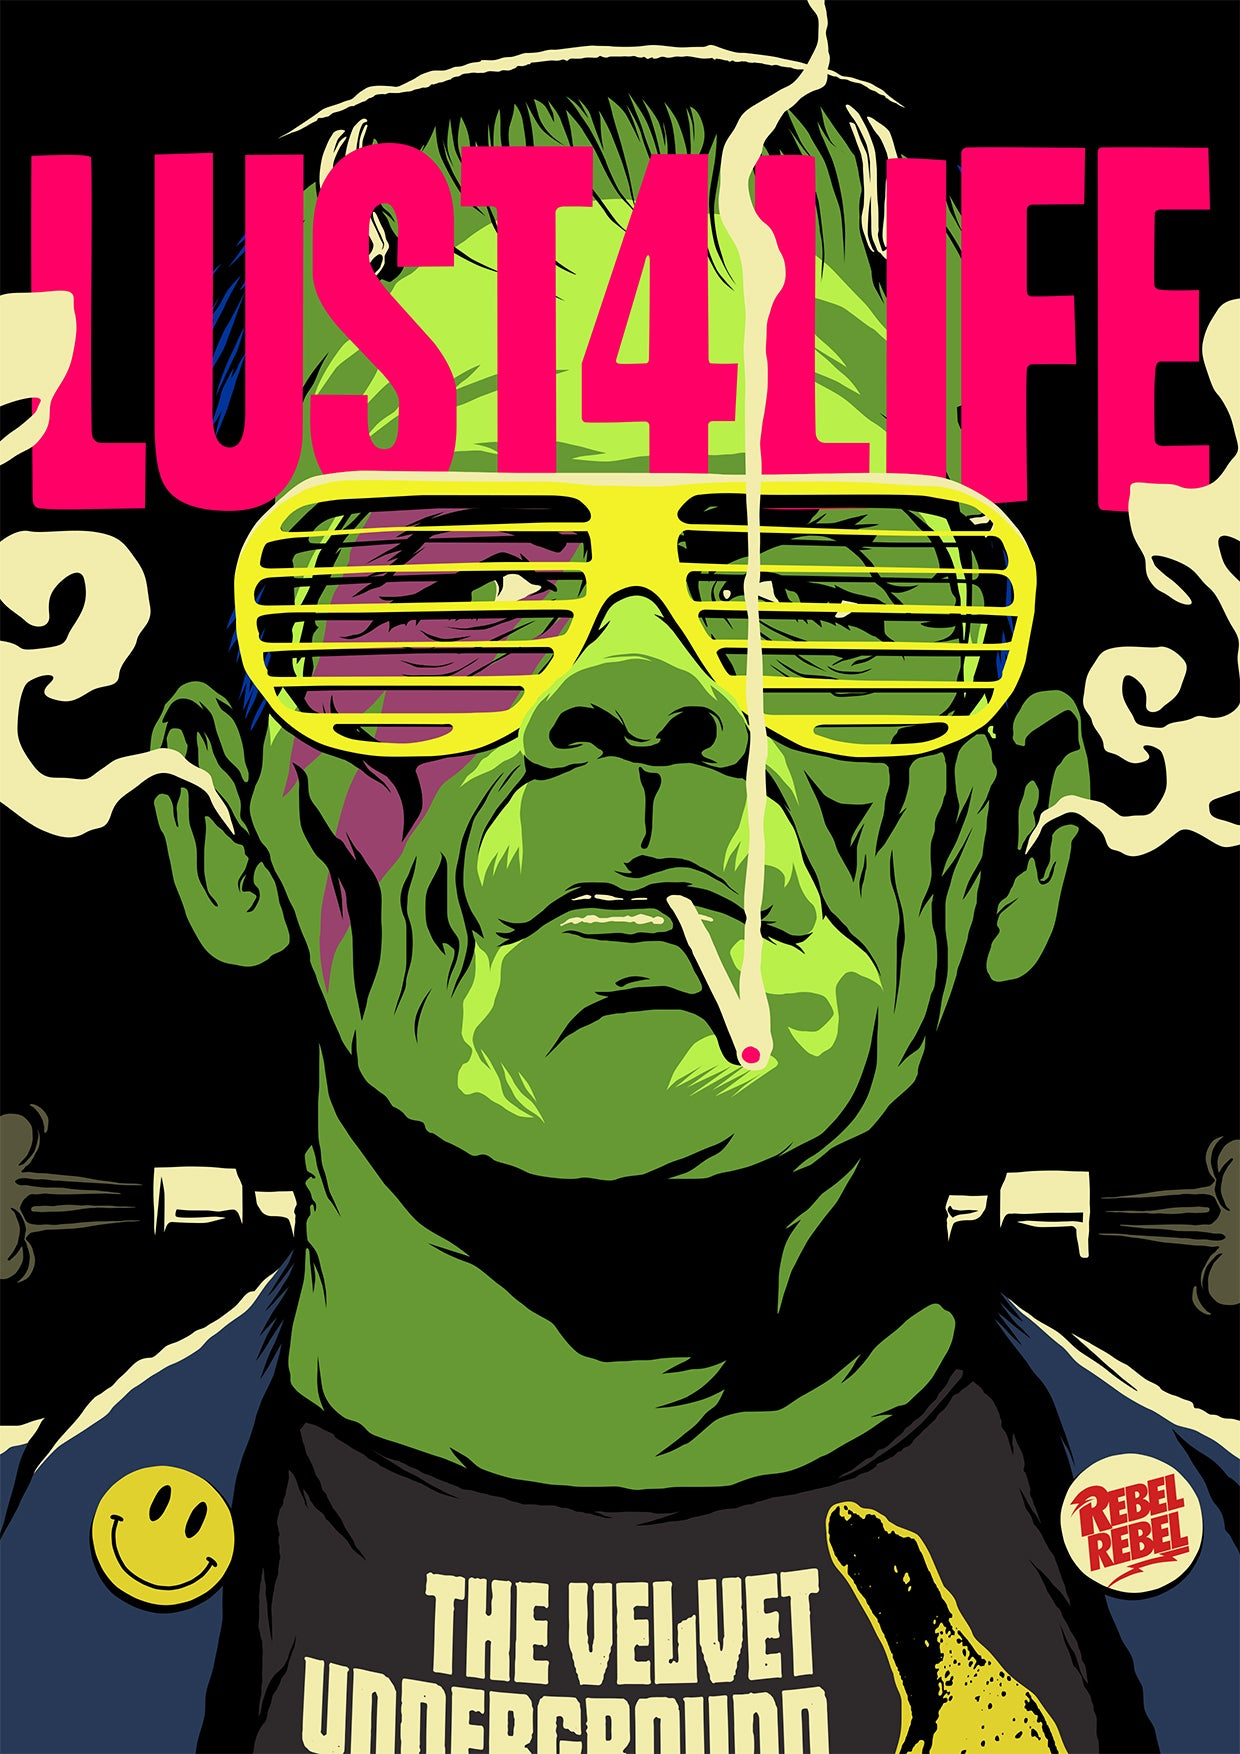 Lust 4 Lyfe by Butcher Billy